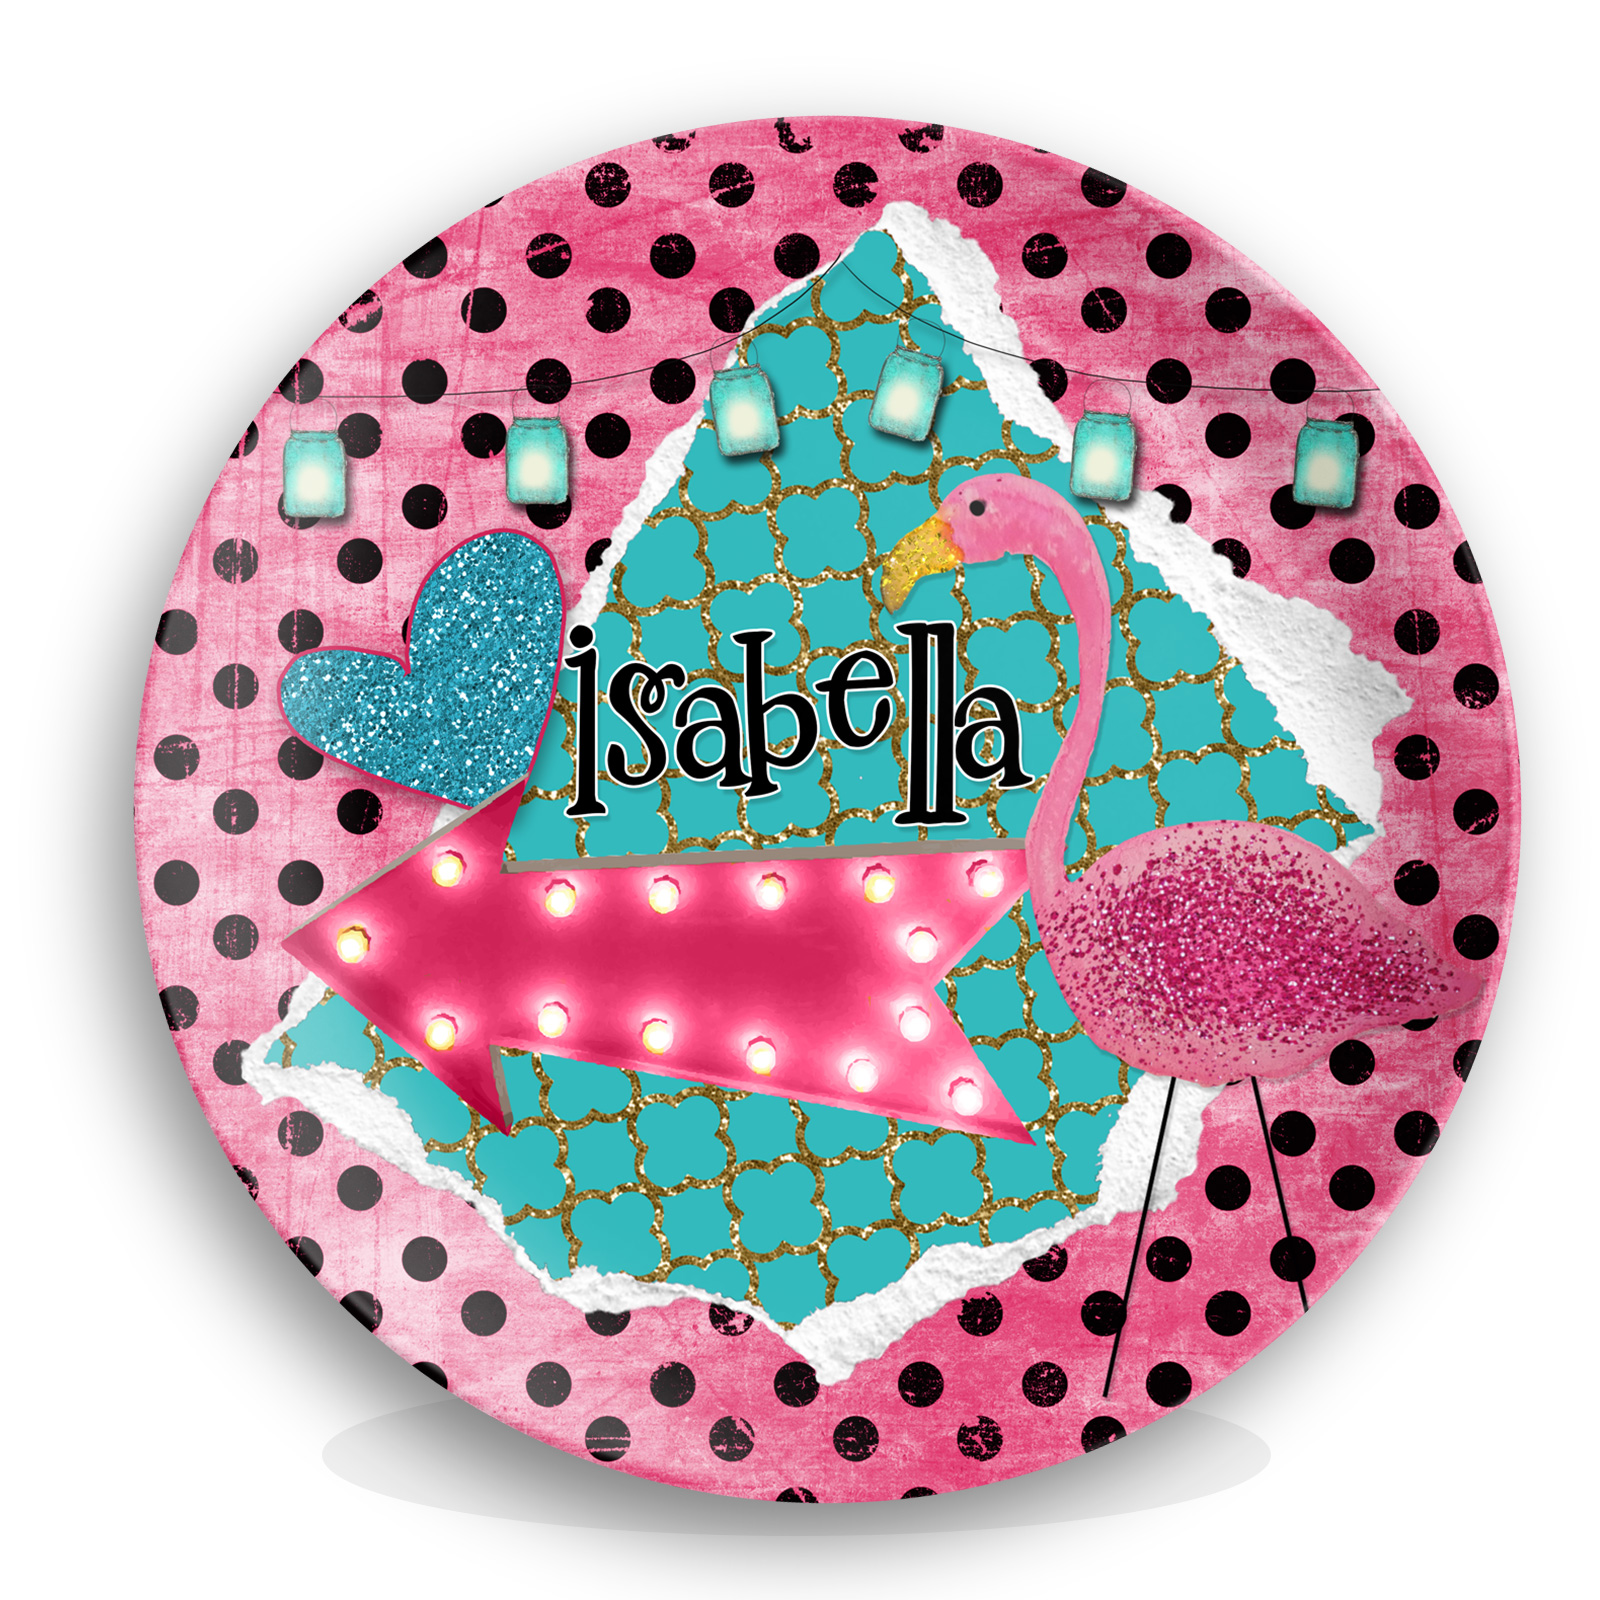 Personalized Kids Melamine Plate - Polka Dot Flamingo ...  sc 1 st  Lime Rikee Designs & Personalized Plate Set Polka Dot Flamingo Melamine | Pink Flamingo ...